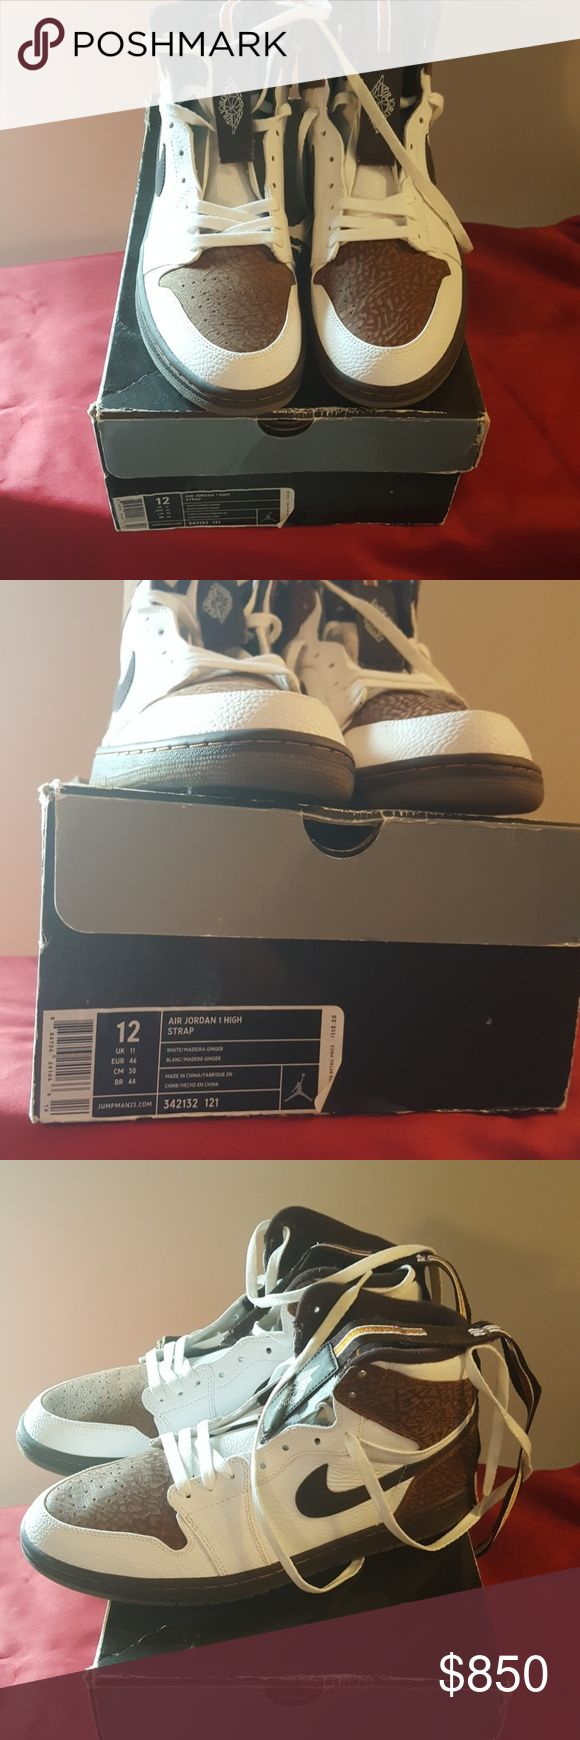 100% DS and 100% Authentic Jordan 1 Madereira Nobody has a 12 in stock. 2009 shoe, like New. 9.9999/10. Sharp.. I have searched the web, these are DeadStock.  JORDAN 1 with Strap still smell new.. And let me tell u they are clean!! People will definitely notice you!!! ABSOLUTELY No Trades.. this shoe is for the baller! Even Flight club doesn't have shoe available. Offers are welcome, but absolutely no lowballs.. Jordan Shoes Sneakers